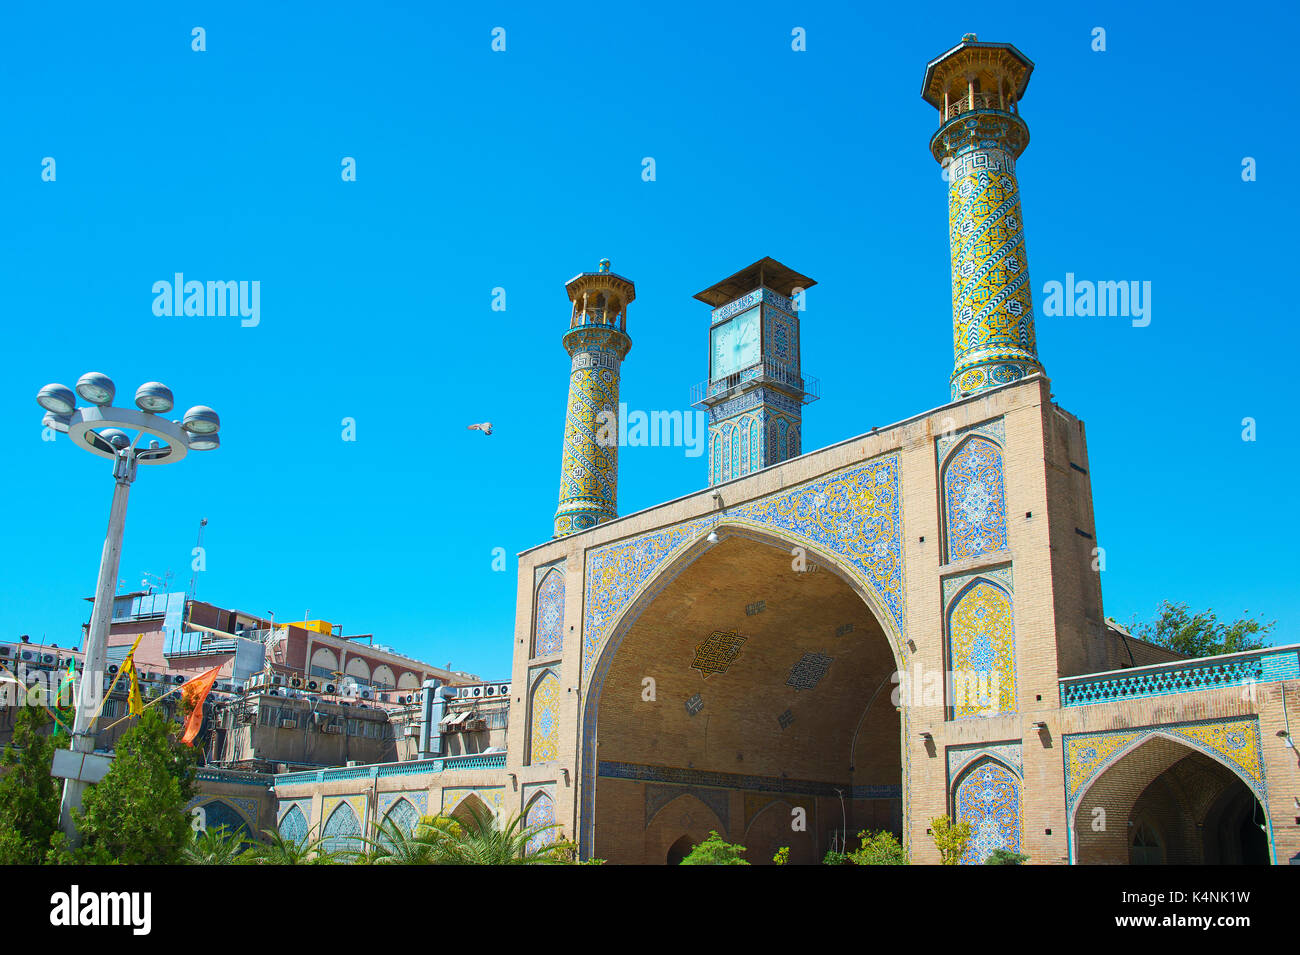 The Shah Mosque, also known as the Imam Khomeini Mosque is a mosque in the Grand Bazaar in Tehran, Iran. - Stock Image